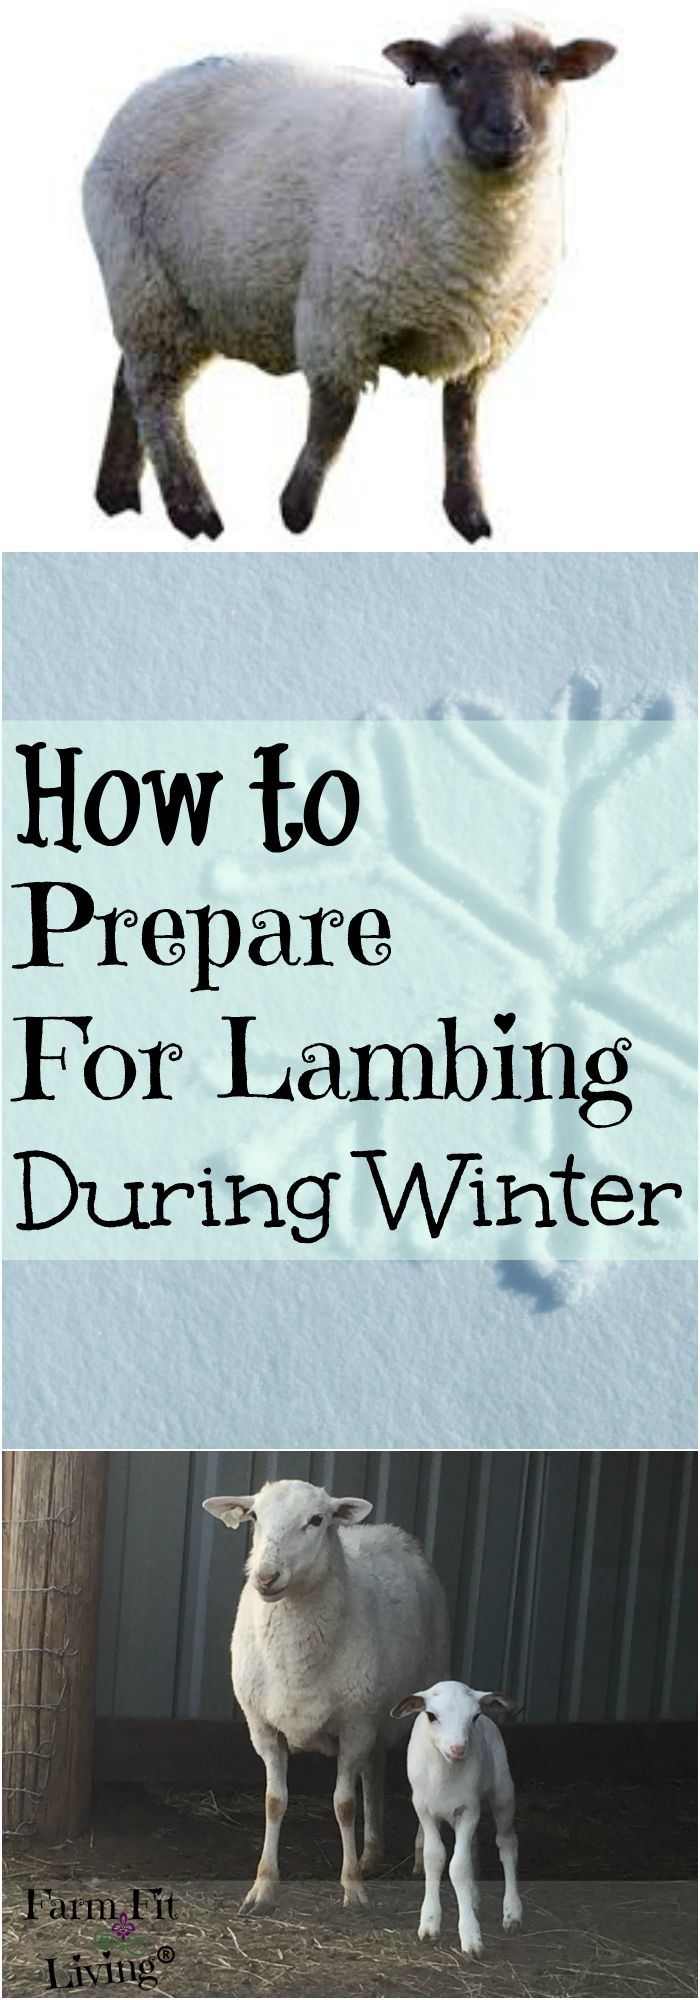 How to Prepare for Lambing Season | Hair Sheep Production | Getting Ready for Lambing